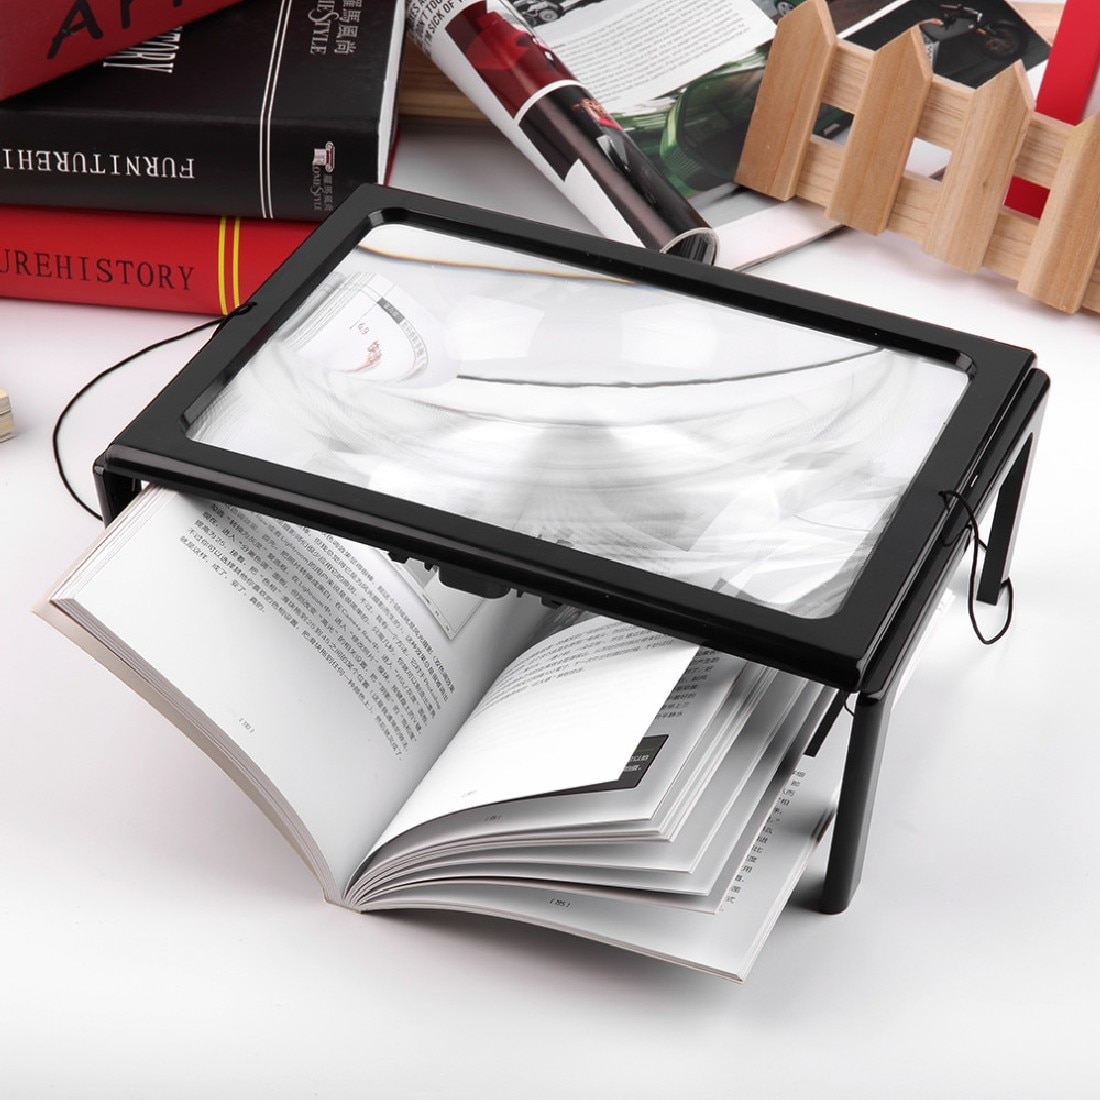 3X Foldable Magnifying Glass Loupe for Reading with 4 LED Lights Ultrathin A4 Full Page Large PVC Magnifier Hands Free